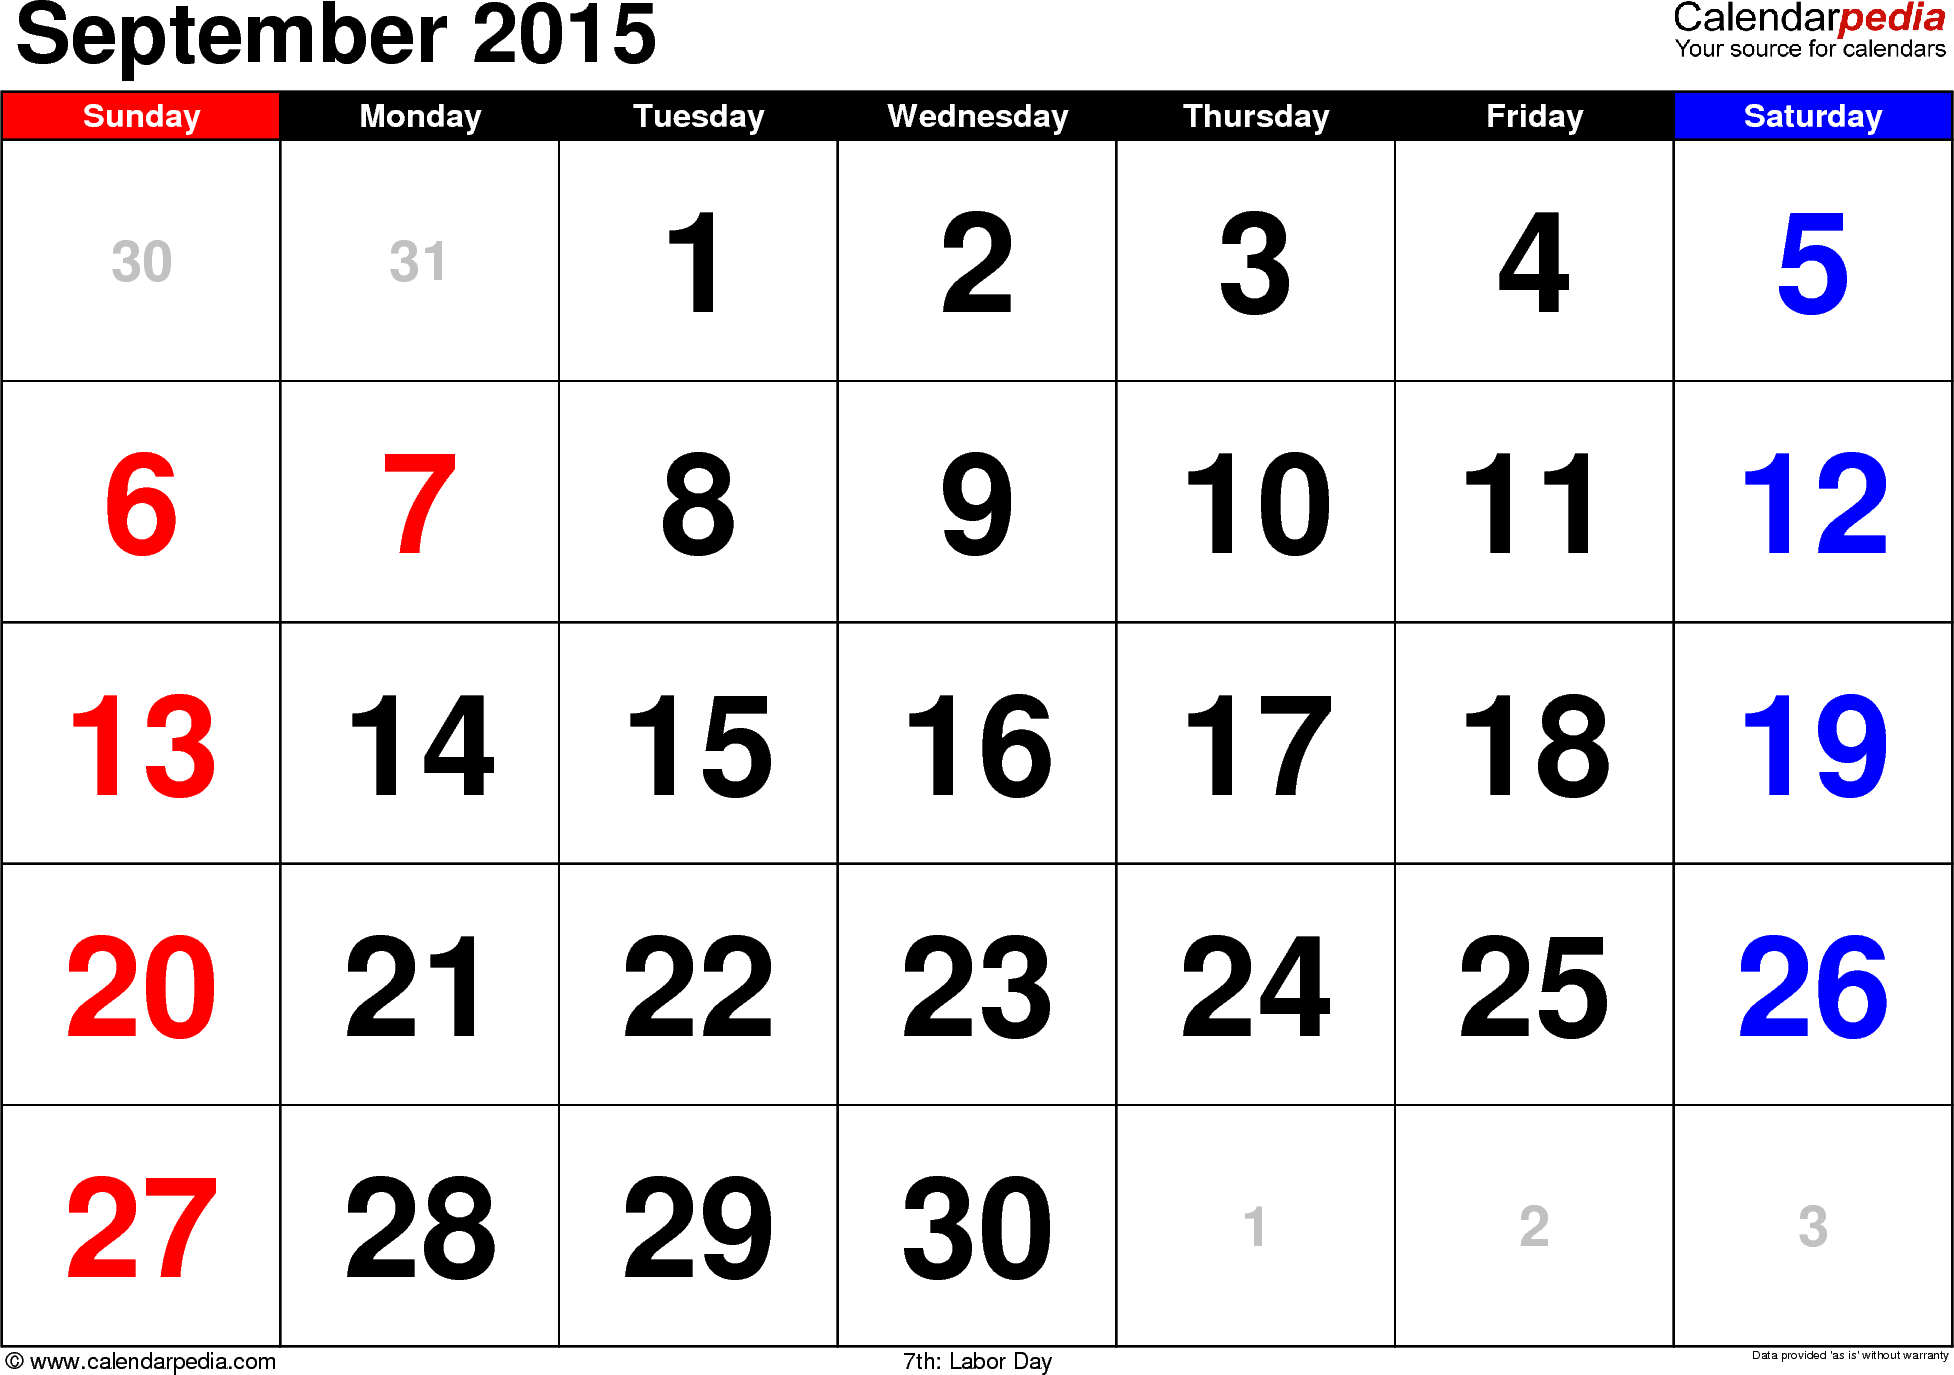 September 2015 calendar, landscape orientation, large numerals, available as printable templates for Word, Excel and PDF